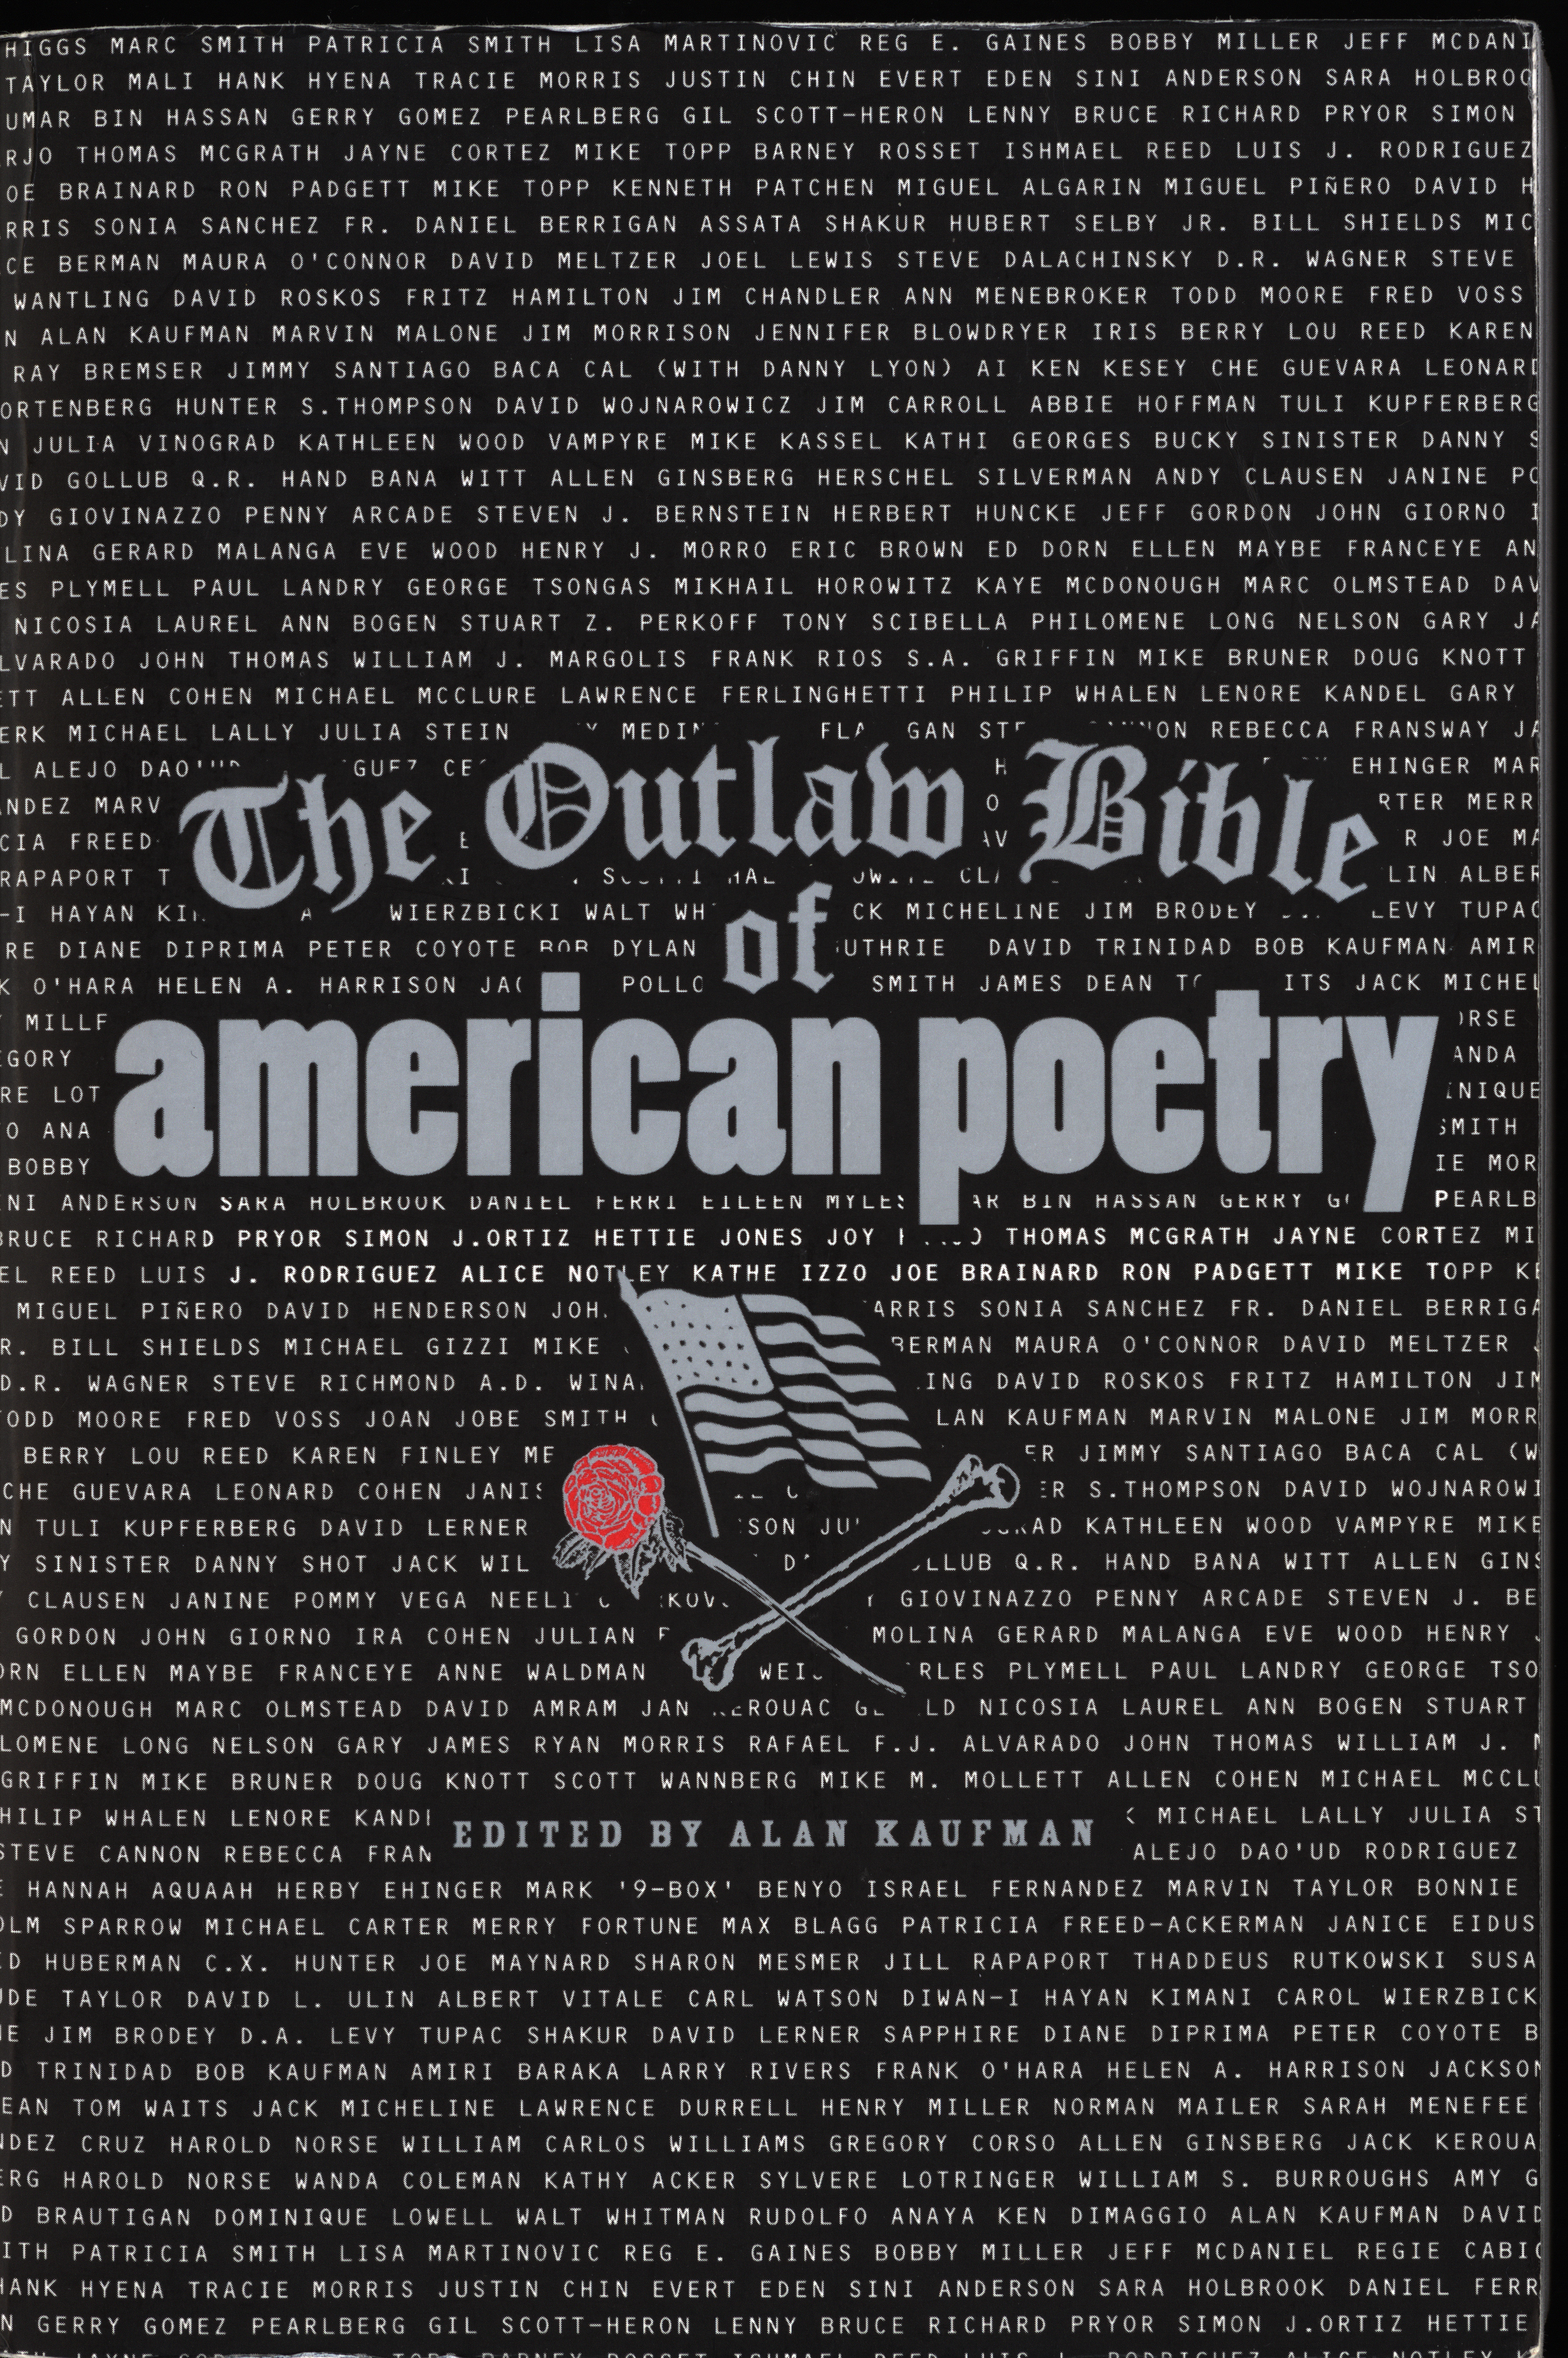 Kaufman, Alan. The Outlaw Bible of American Poetry, 1999.